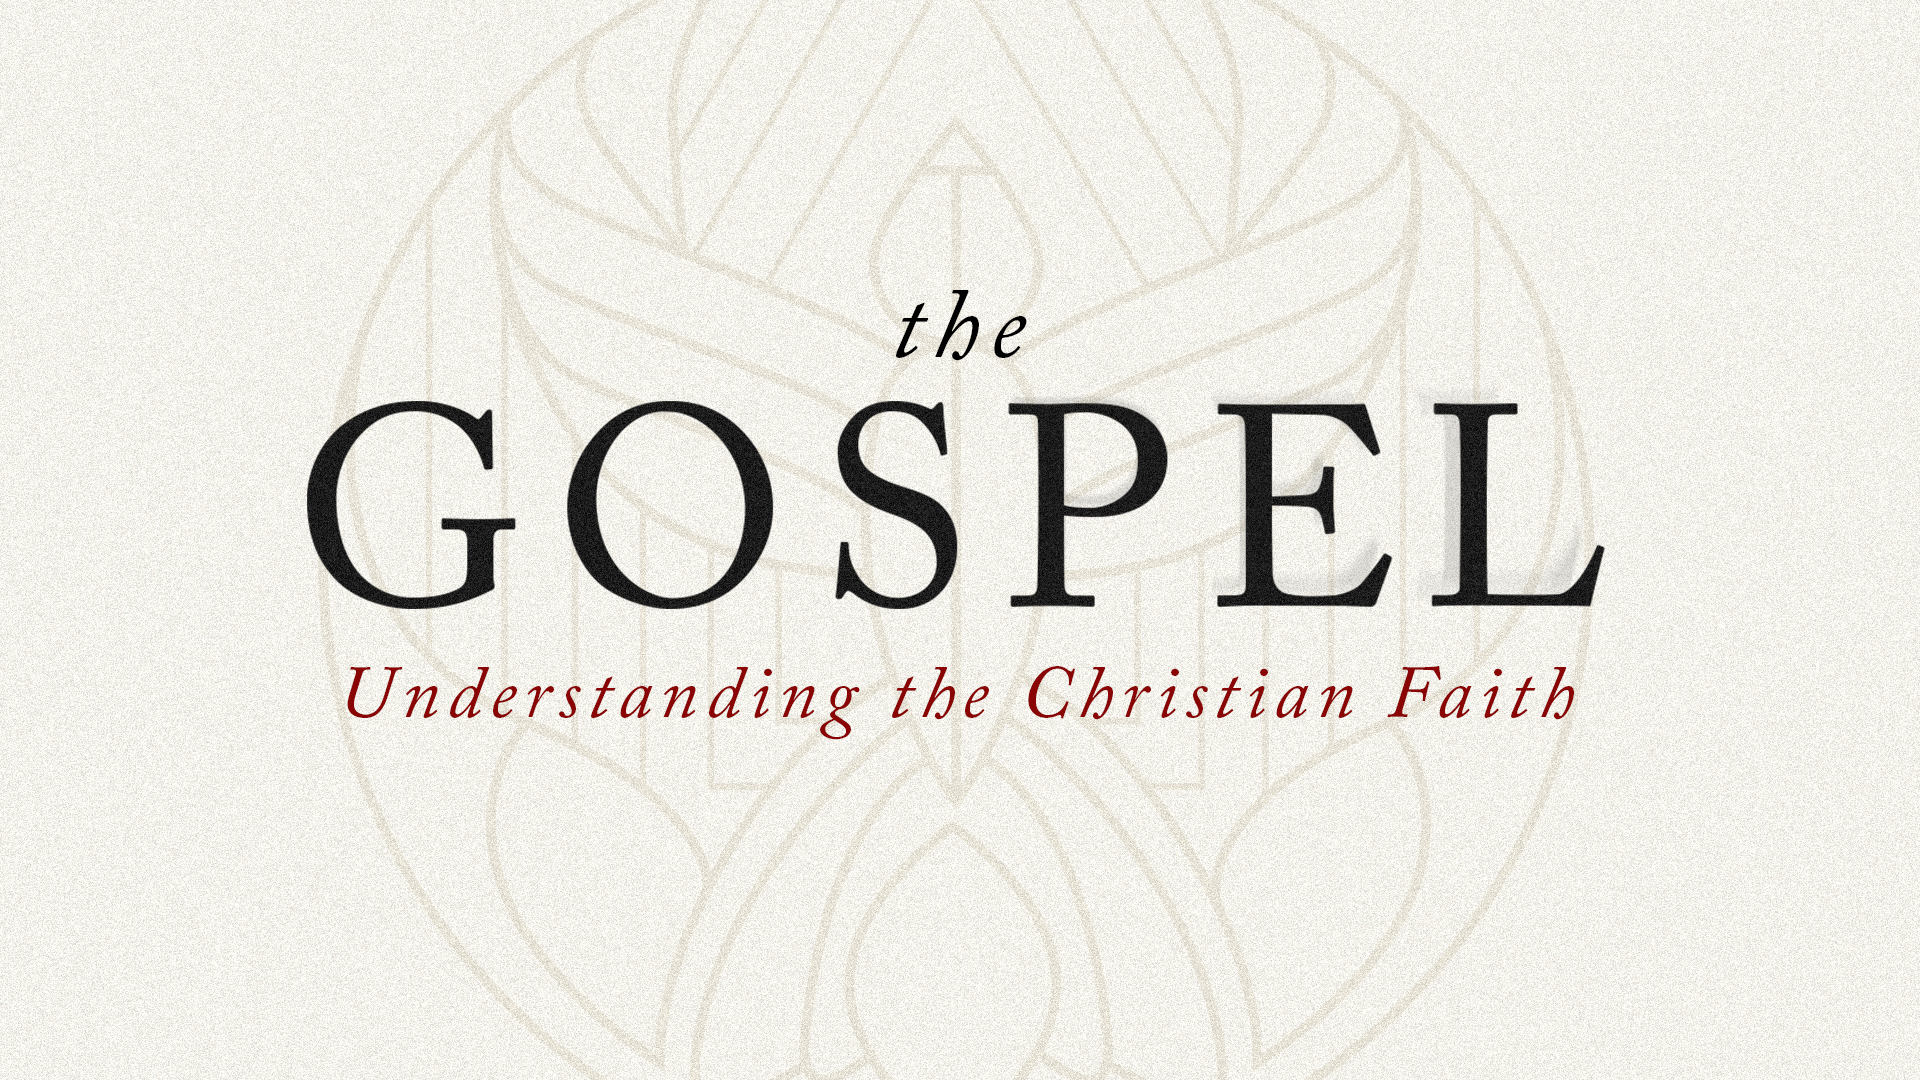 The Gospel - Understanding the Christian Faith